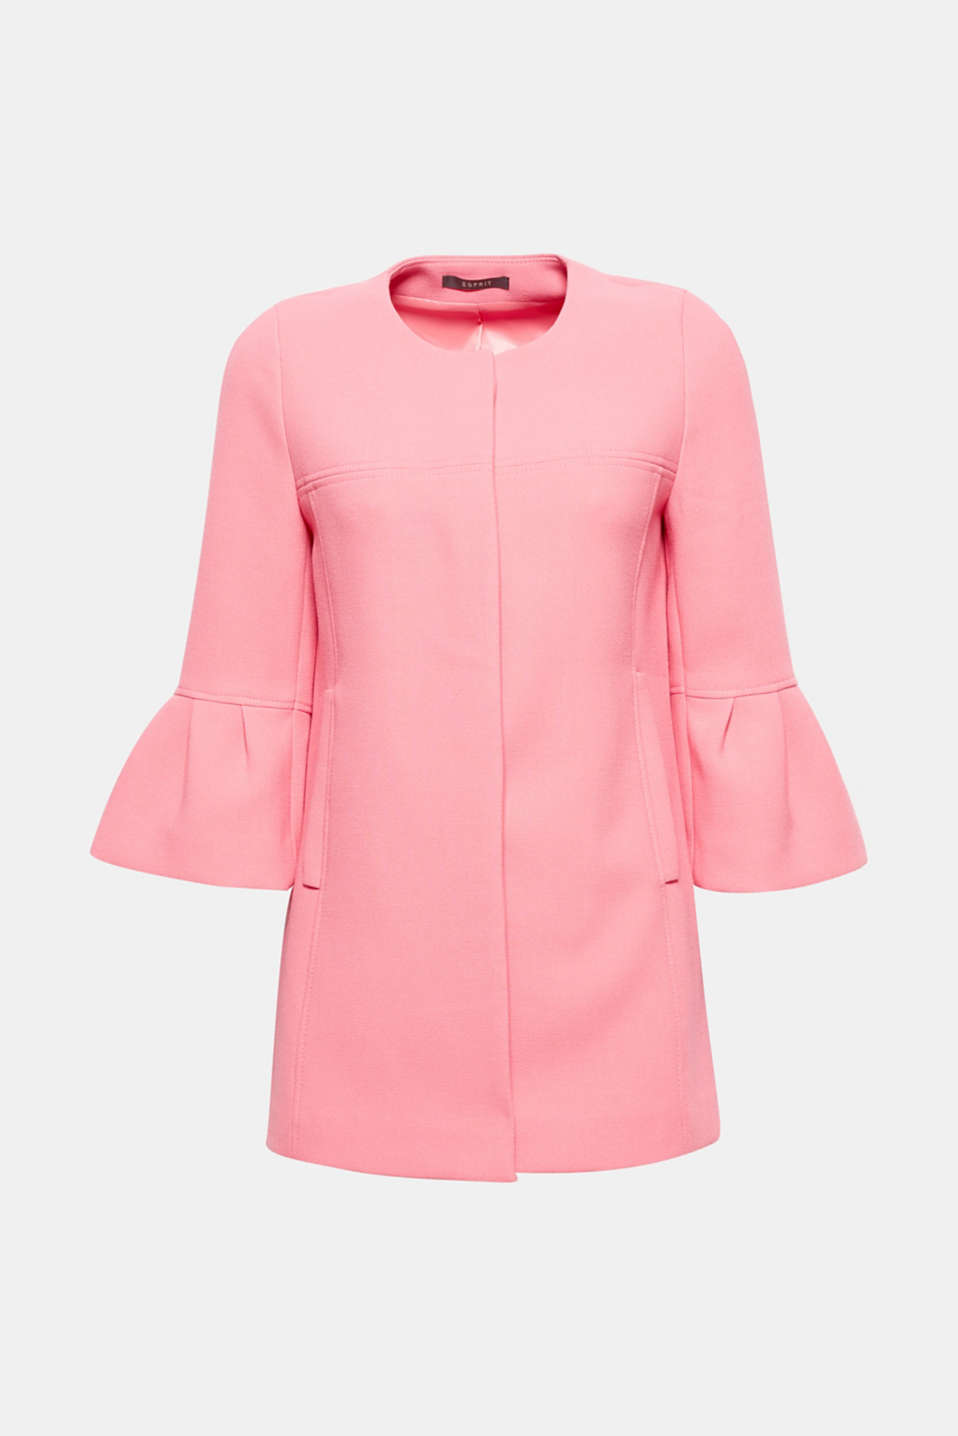 Feminine spring: the trendy shade, the cropped flounce sleeves and the flared silhouette give this coat its pretty charm!